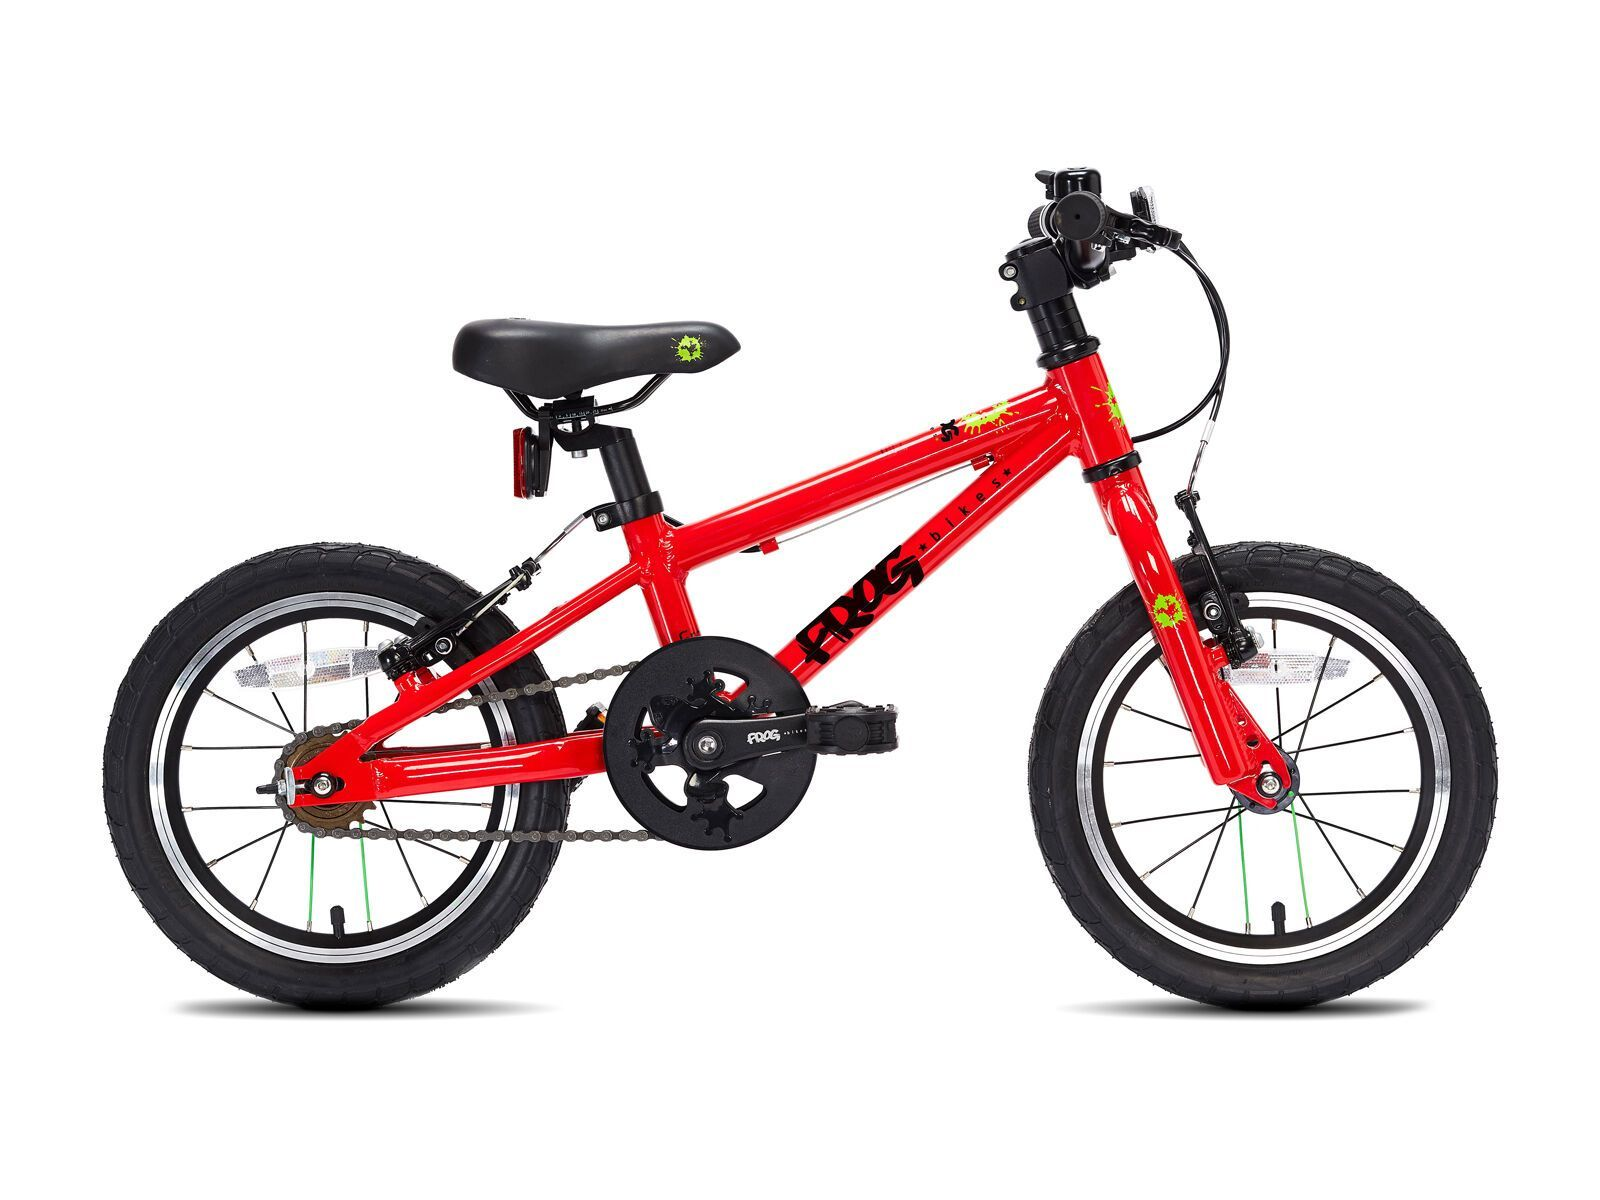 Frog Bikes Frog 40 red 2021 17 cm L-FH40-03-RED-W